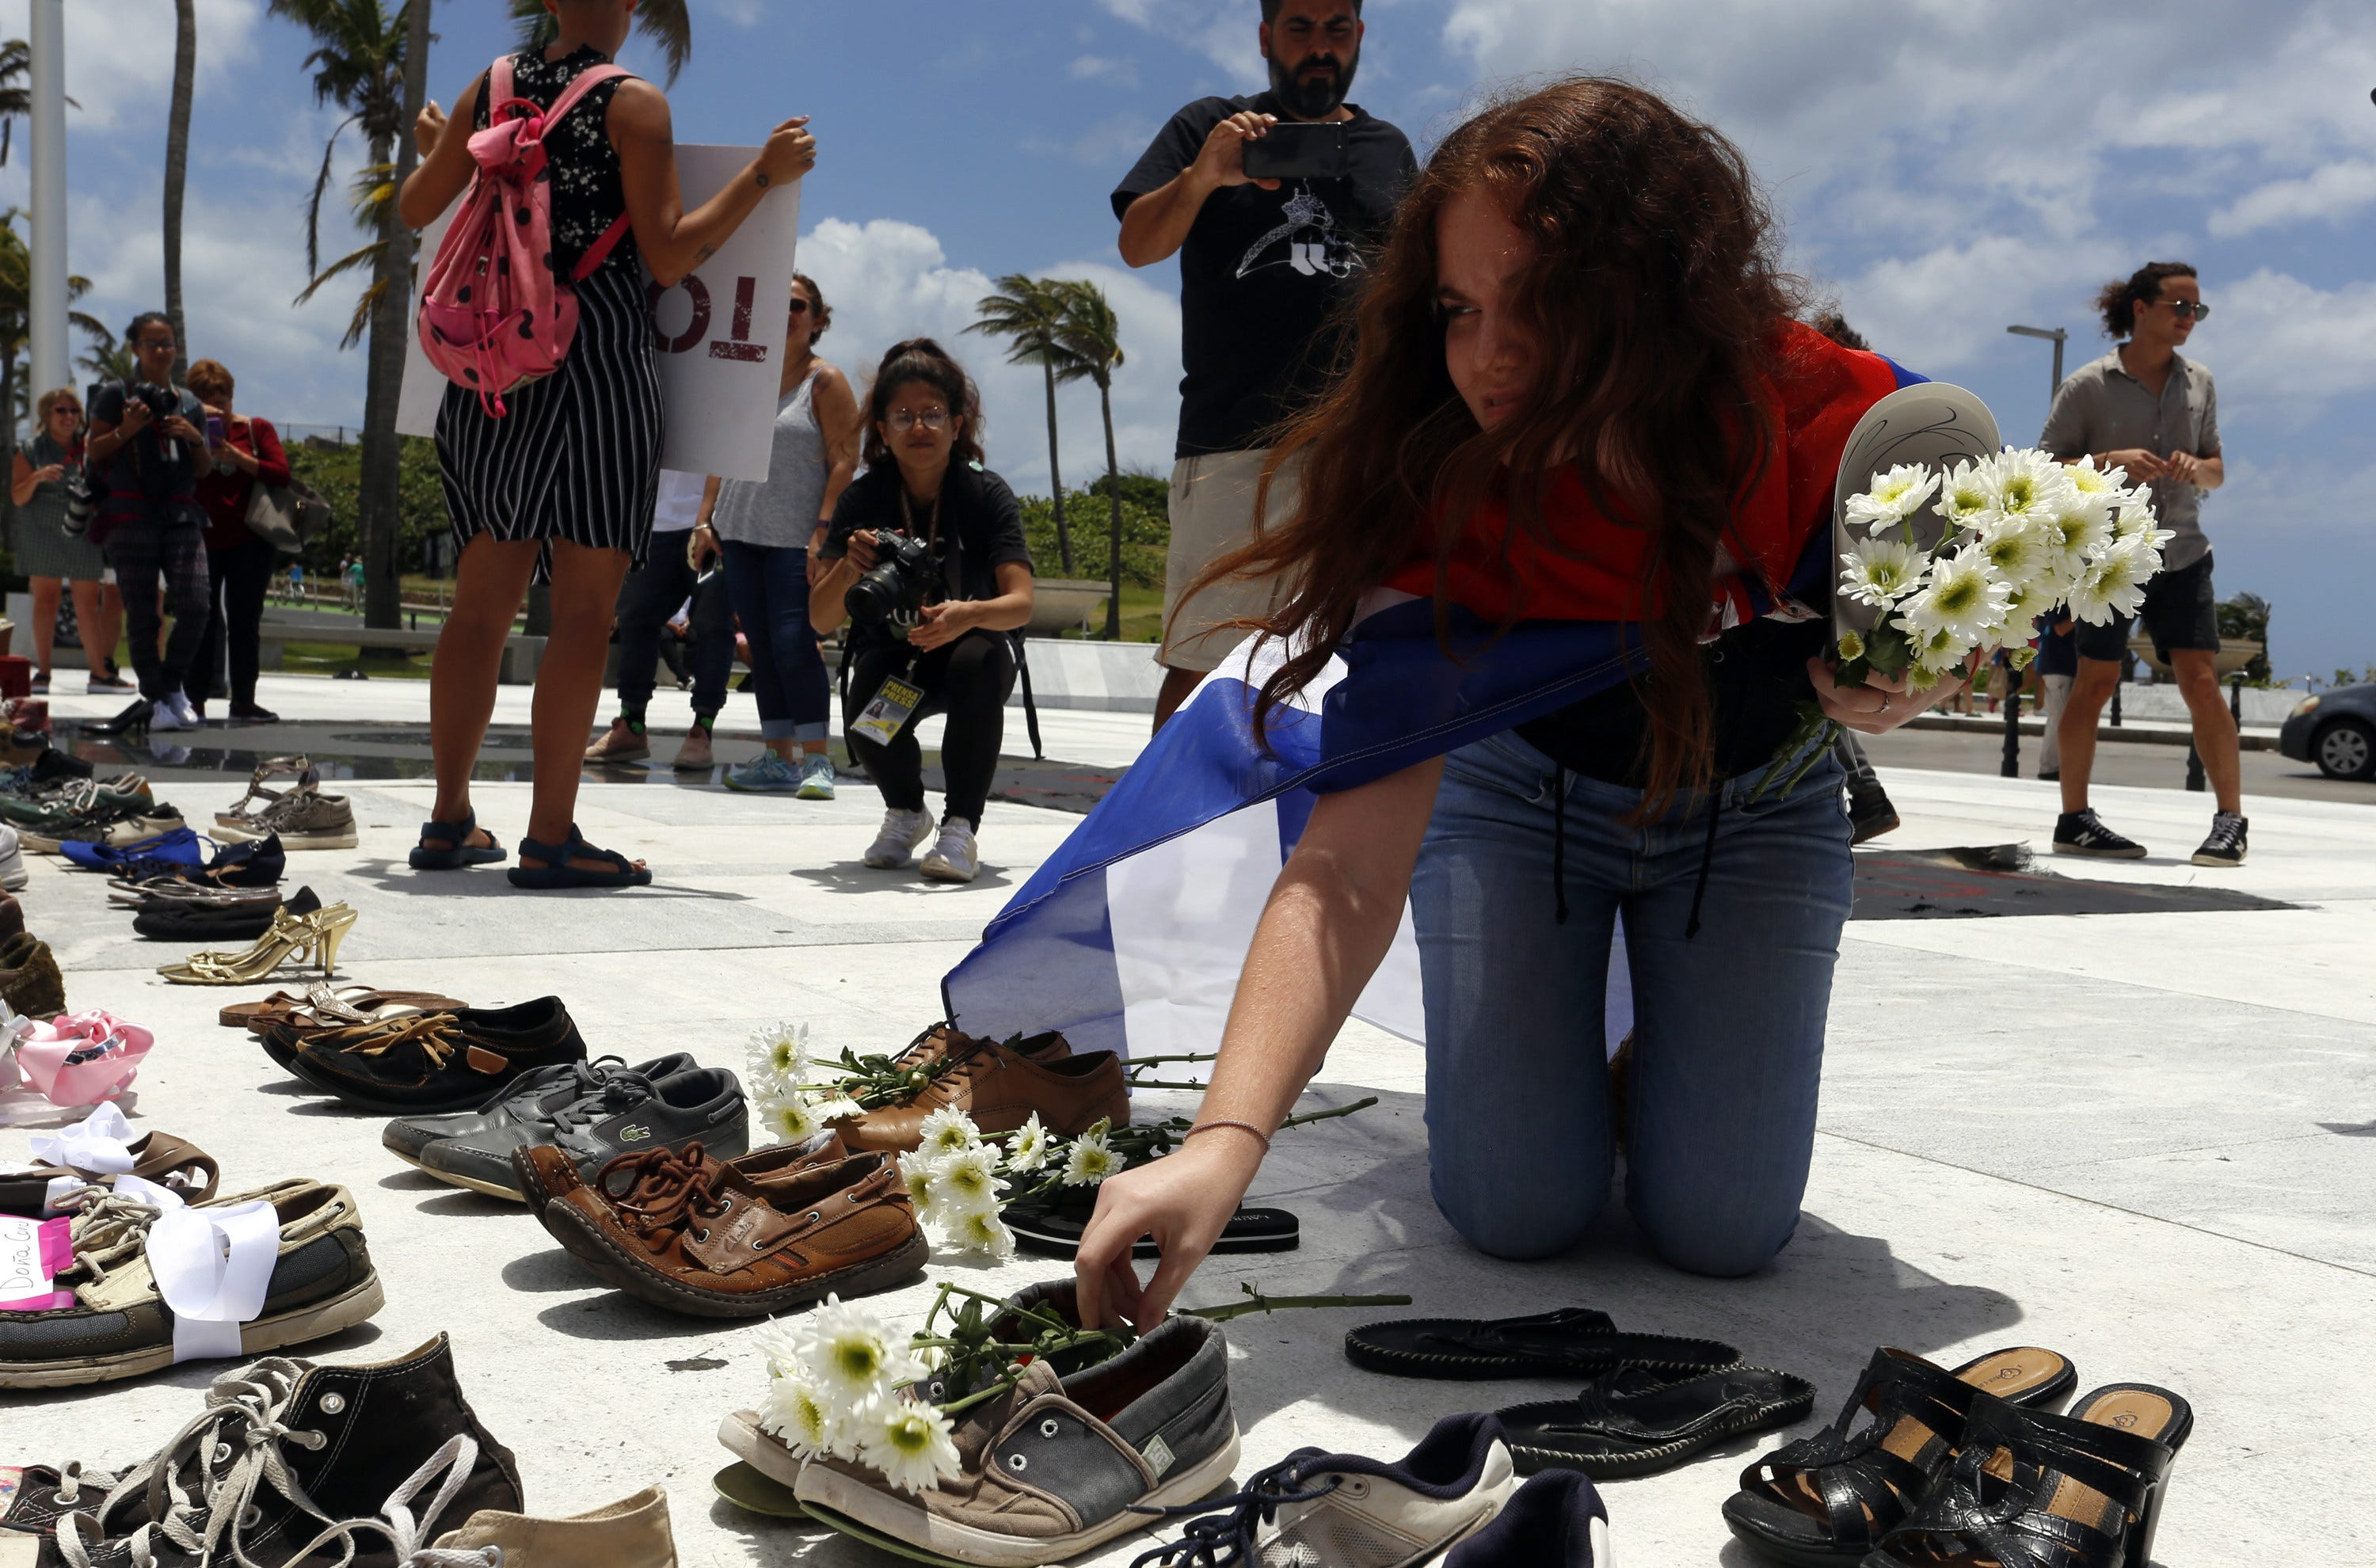 Puerto Rico acknowledges much higher death toll from Hurricane Maria: 1,427 fatalities